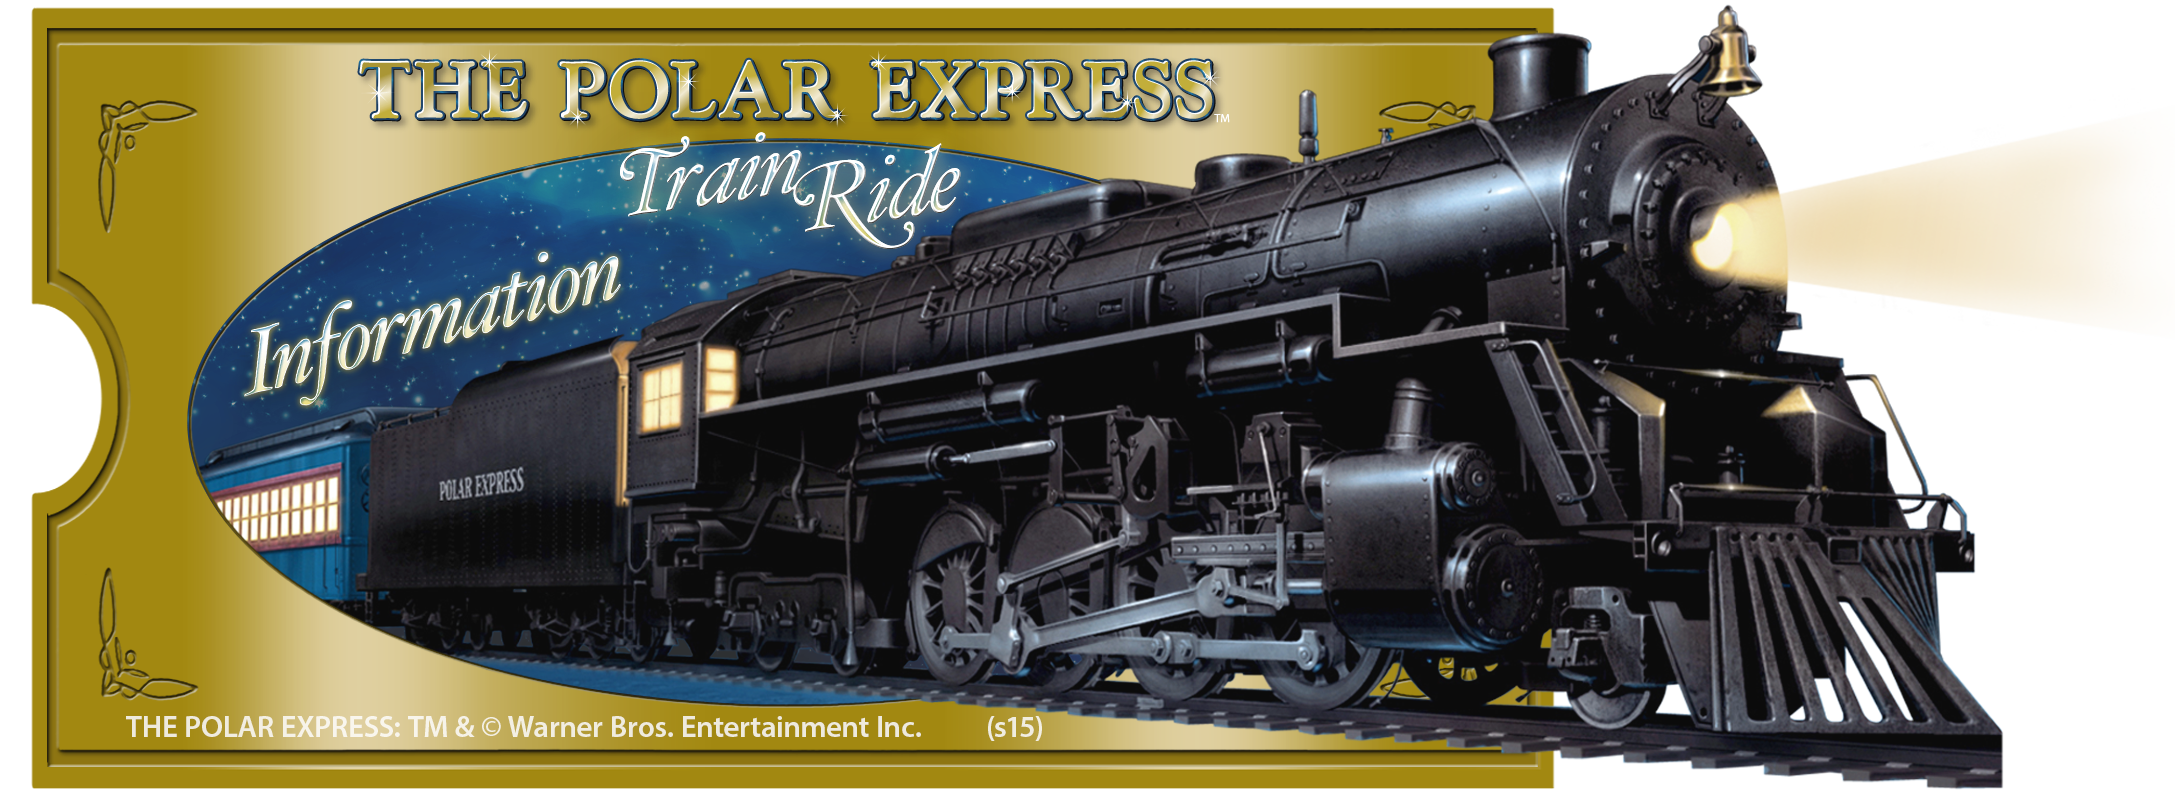 Polar express train png. Kiddos magazine the ride